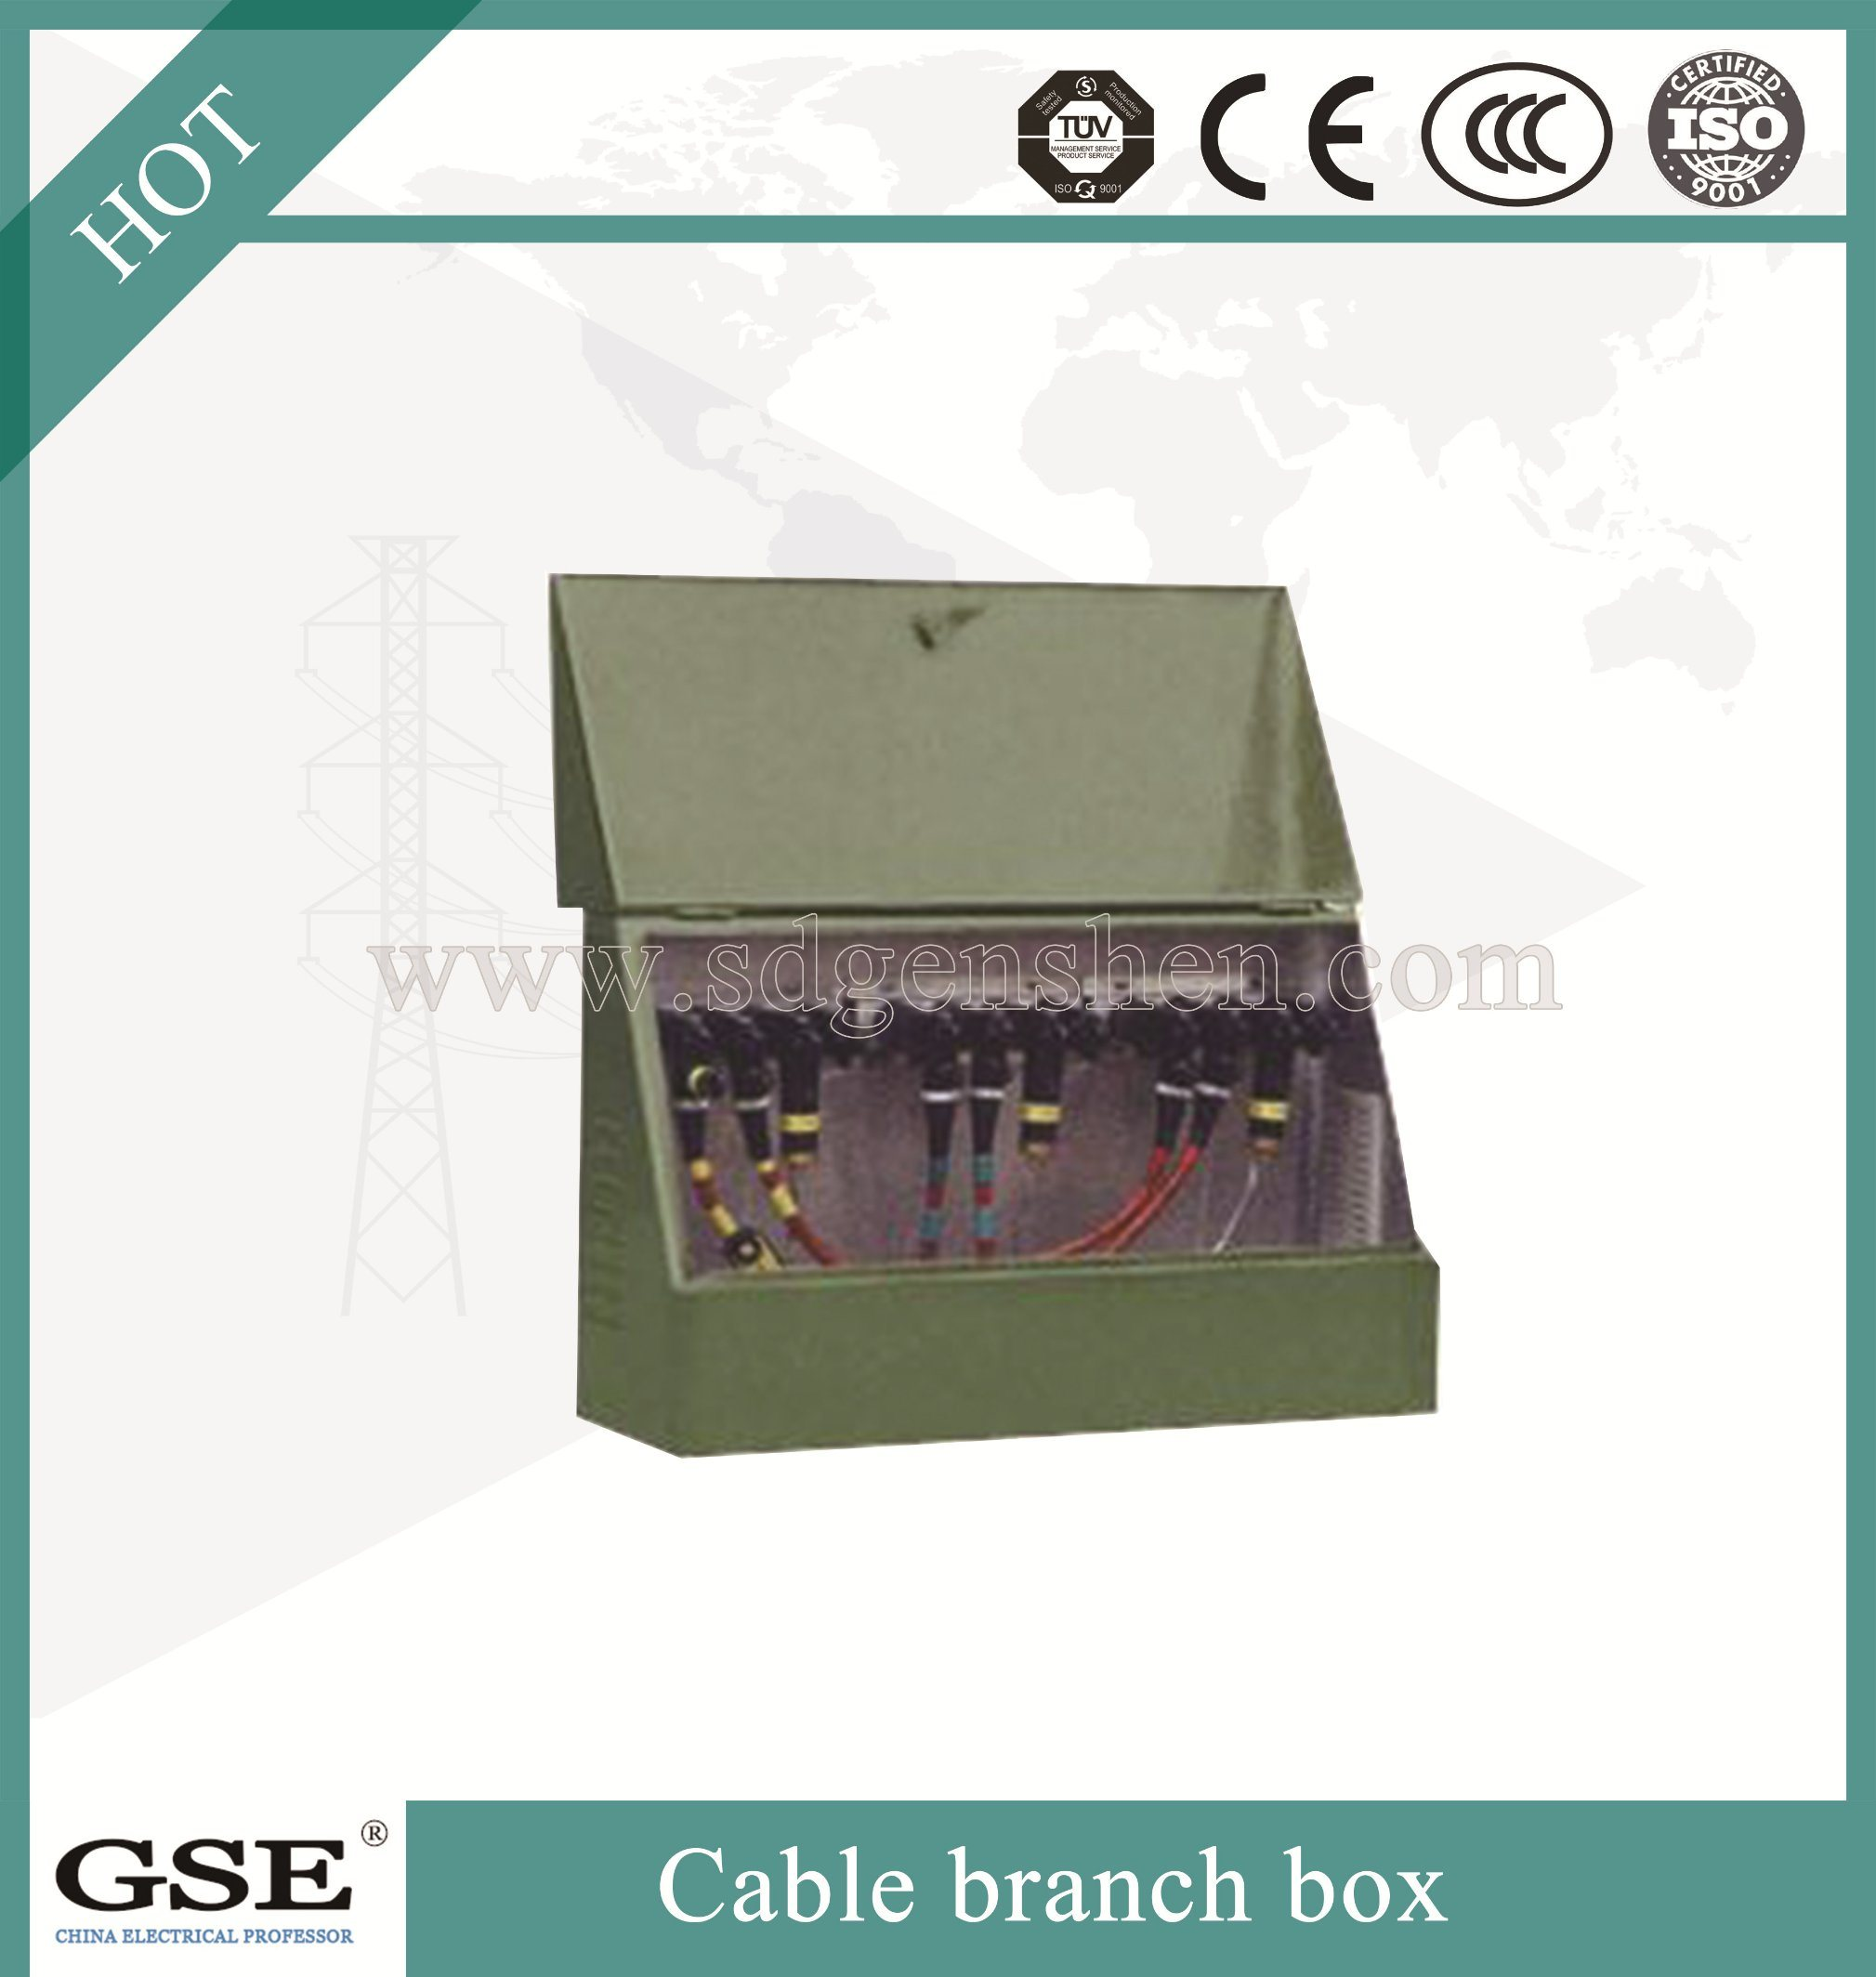 Stainless Steel Enclosure Outdoor High Voltage Cable Branch Box